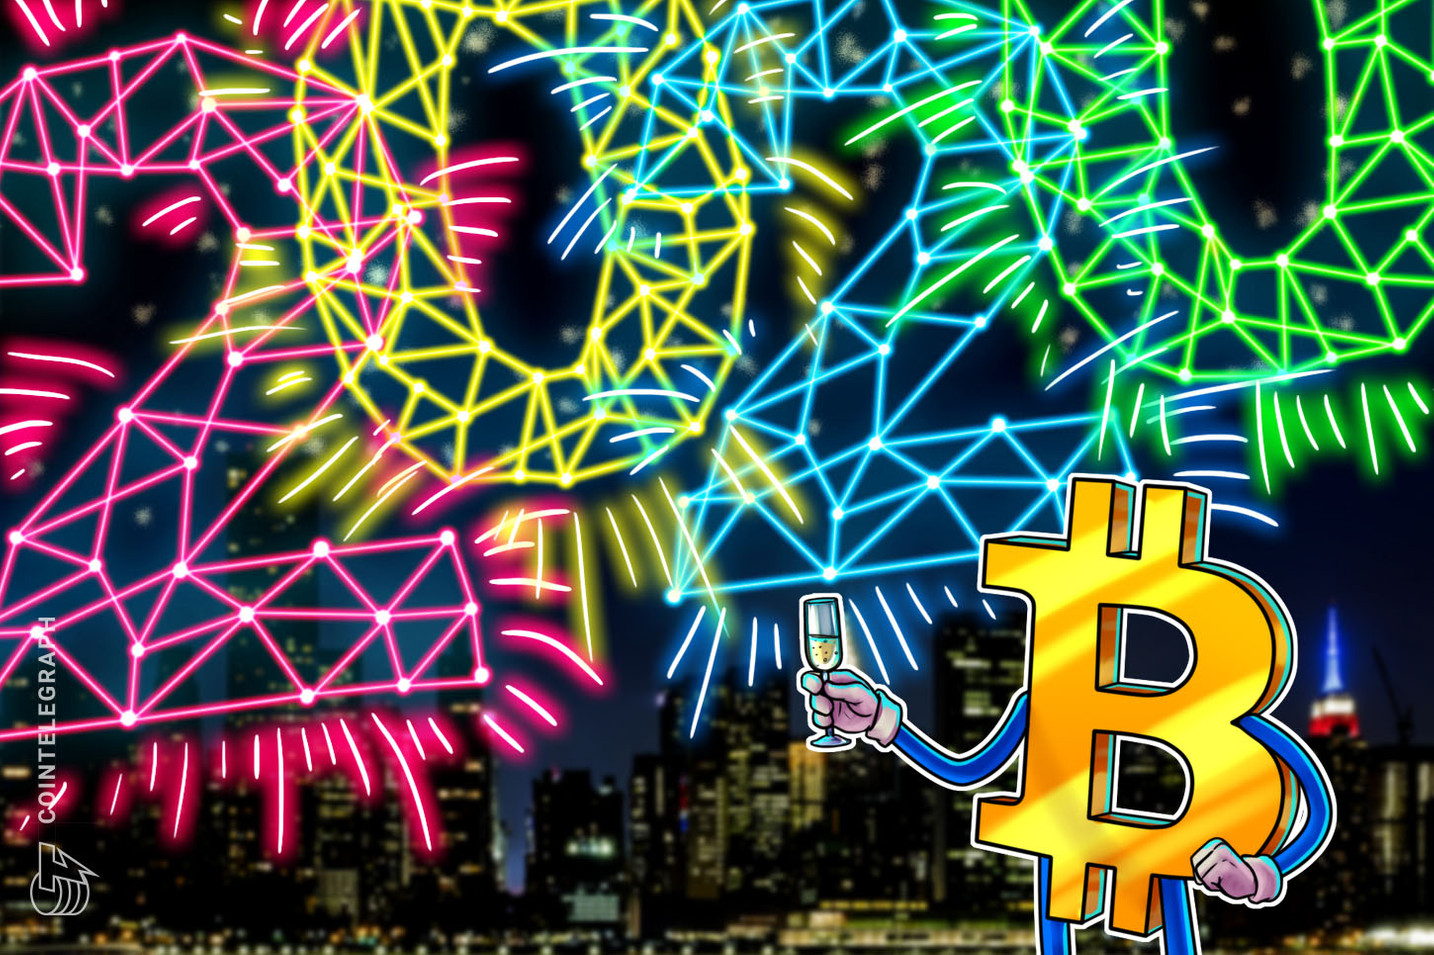 Bitcoin 2020 — Blockchain's New Year Resolutions